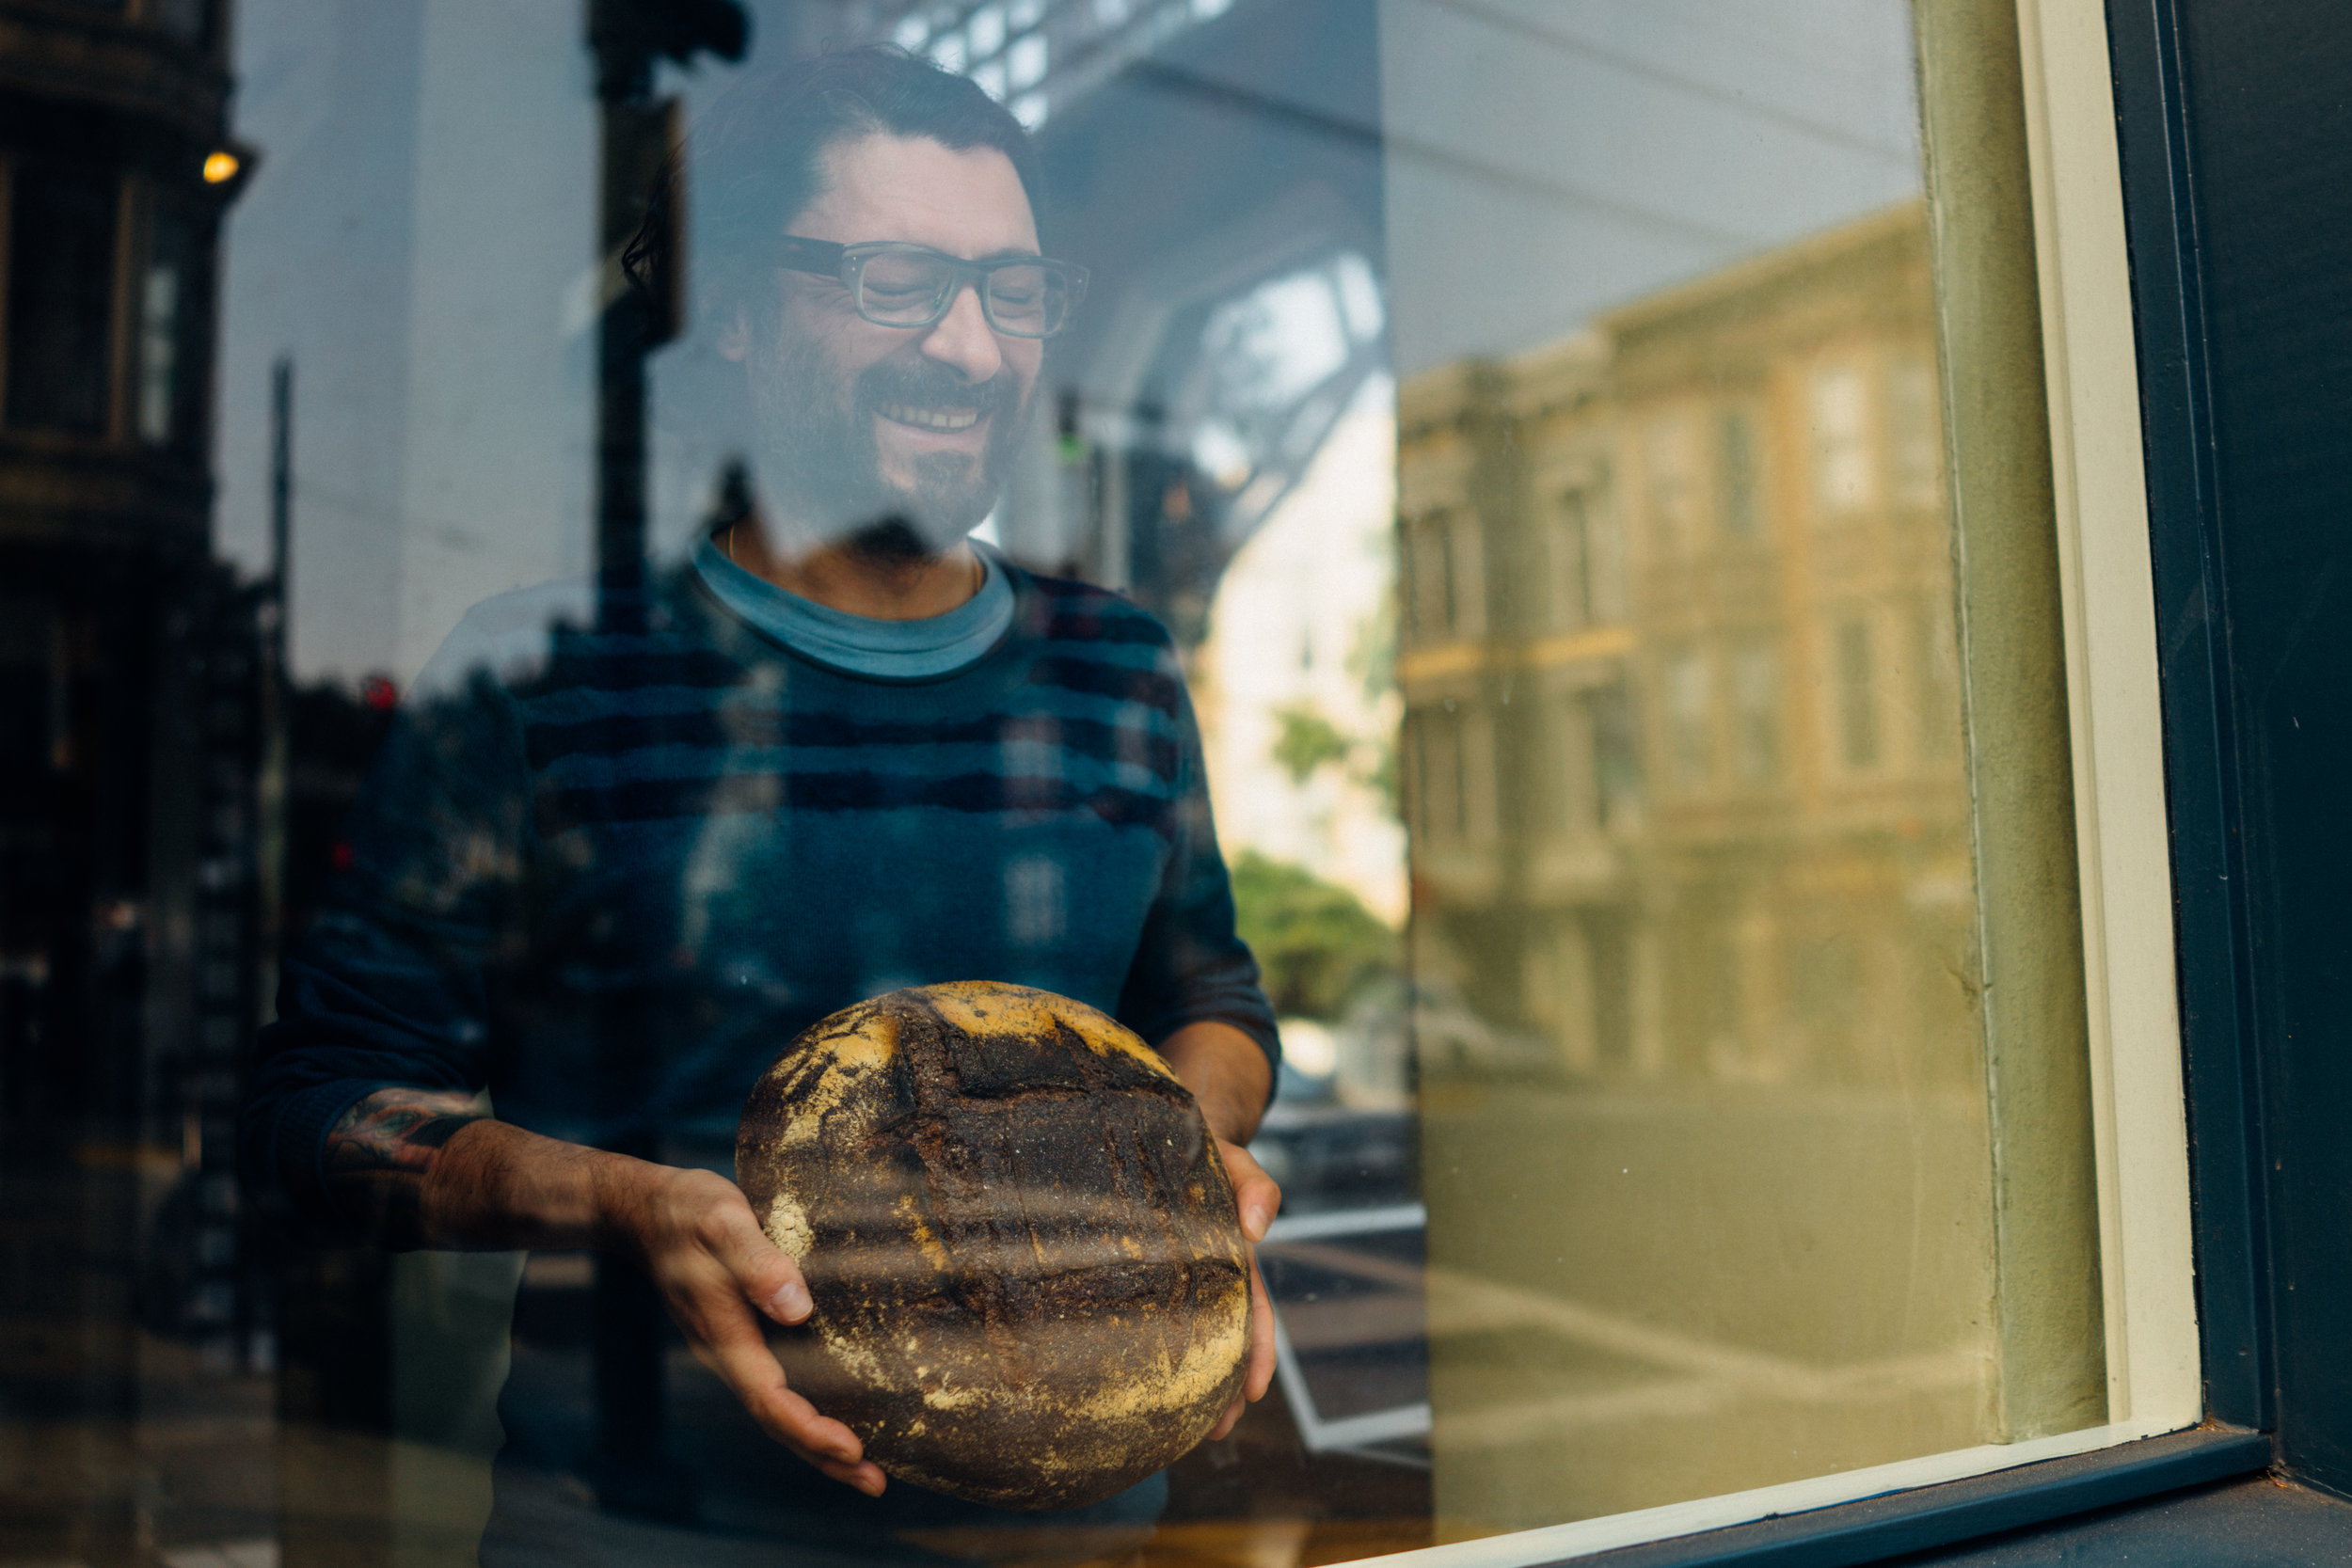 My friend Patrick Jean with Midwife and The Baker's 100% Whole Glenn Wheat in San Francisco, CA